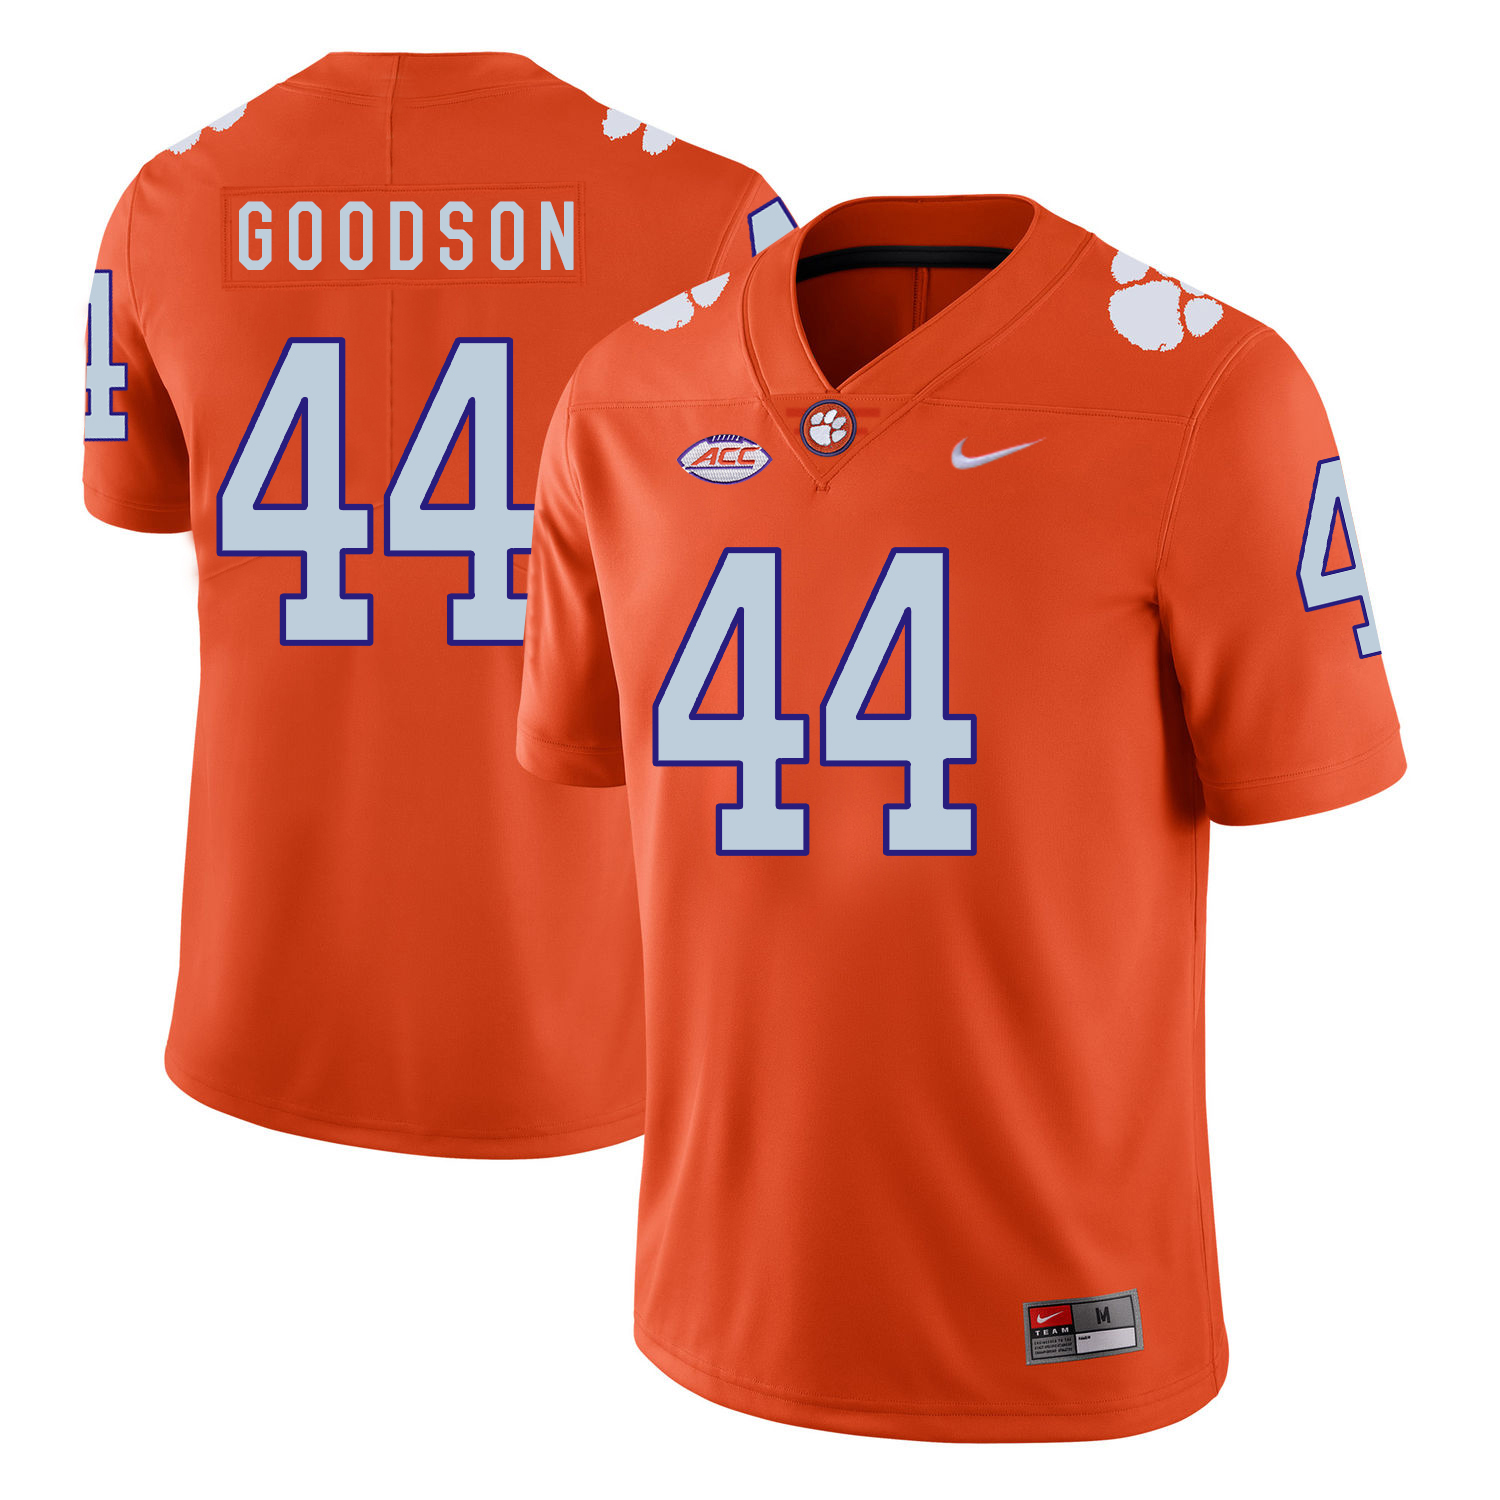 Clemson Tigers 44 B.J. Goodson Orange Nike College Football Jersey